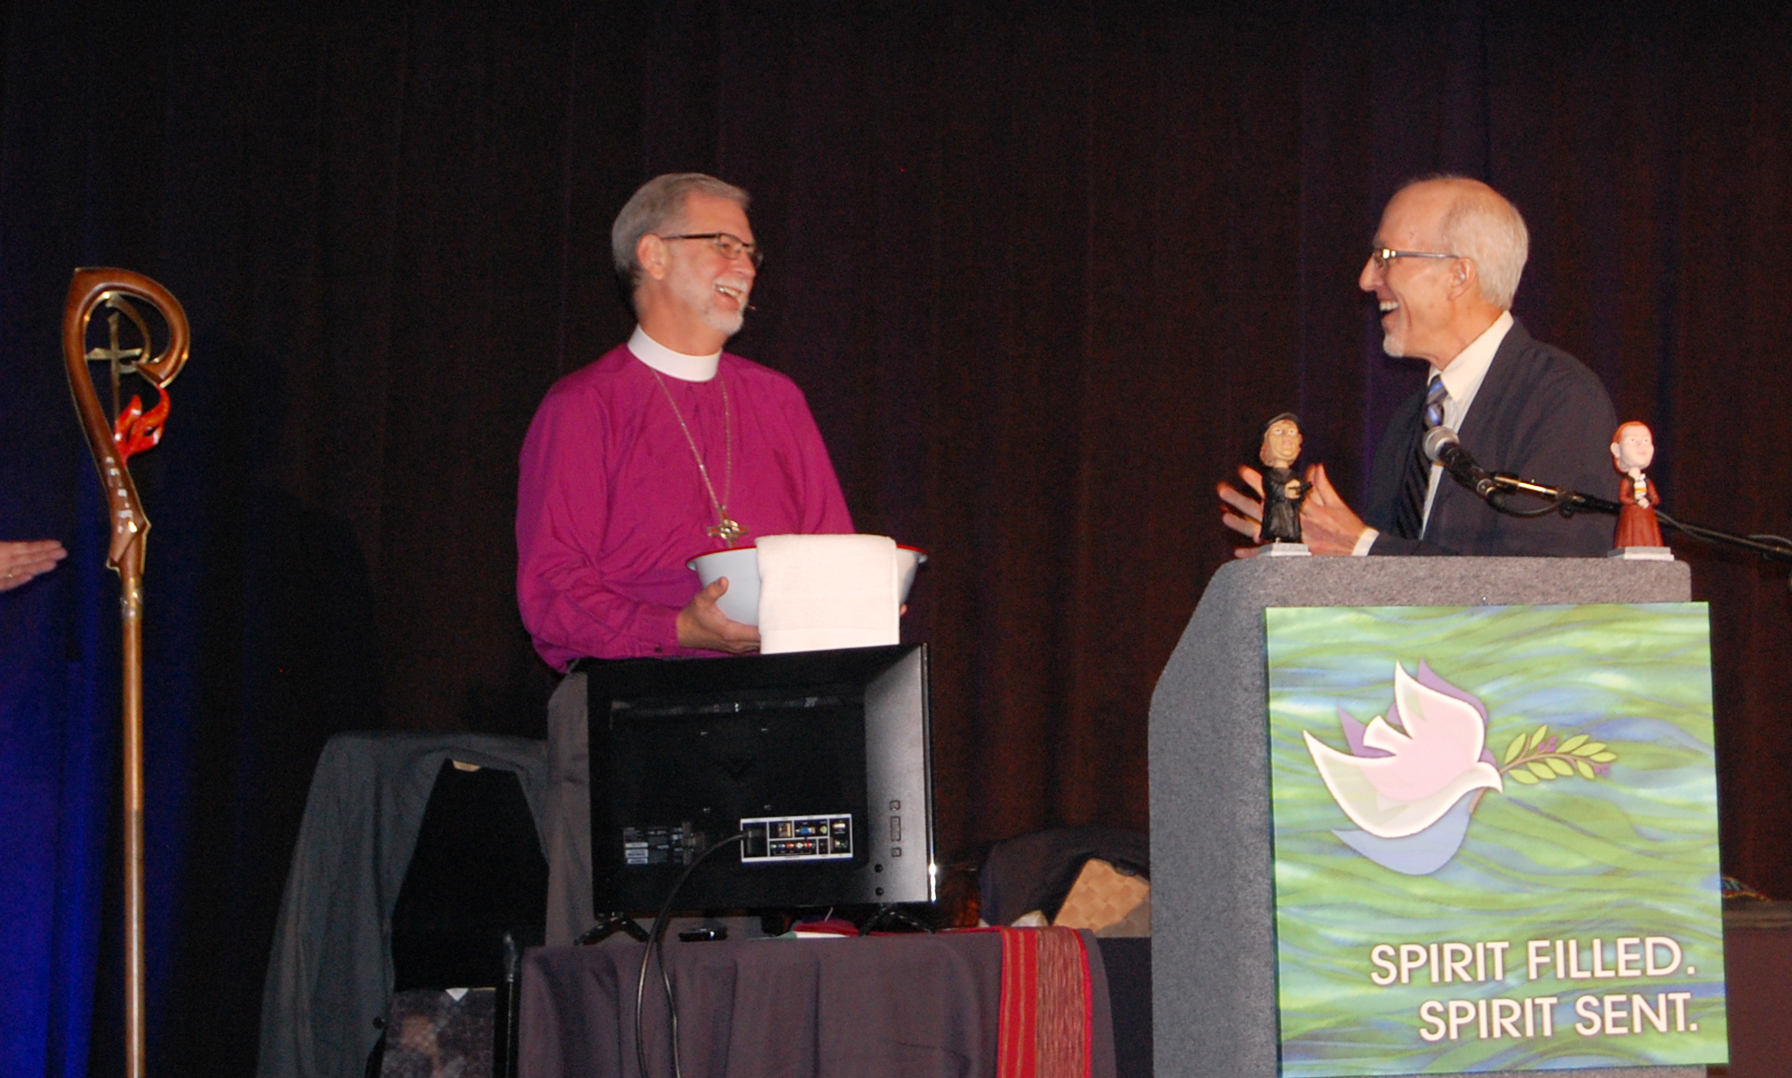 J. Nelson Kraybill (at right), president of Mennonite World Conference, gives a towel and basin to Bishop Bill Gafkjen of the Indiana-Kentucky Synod of the Evangelical Lutheran Church in America on June 11 at the synod's annual assembly. (Photo by Leslie French, Indiana-Kentucky Synod Communicator)